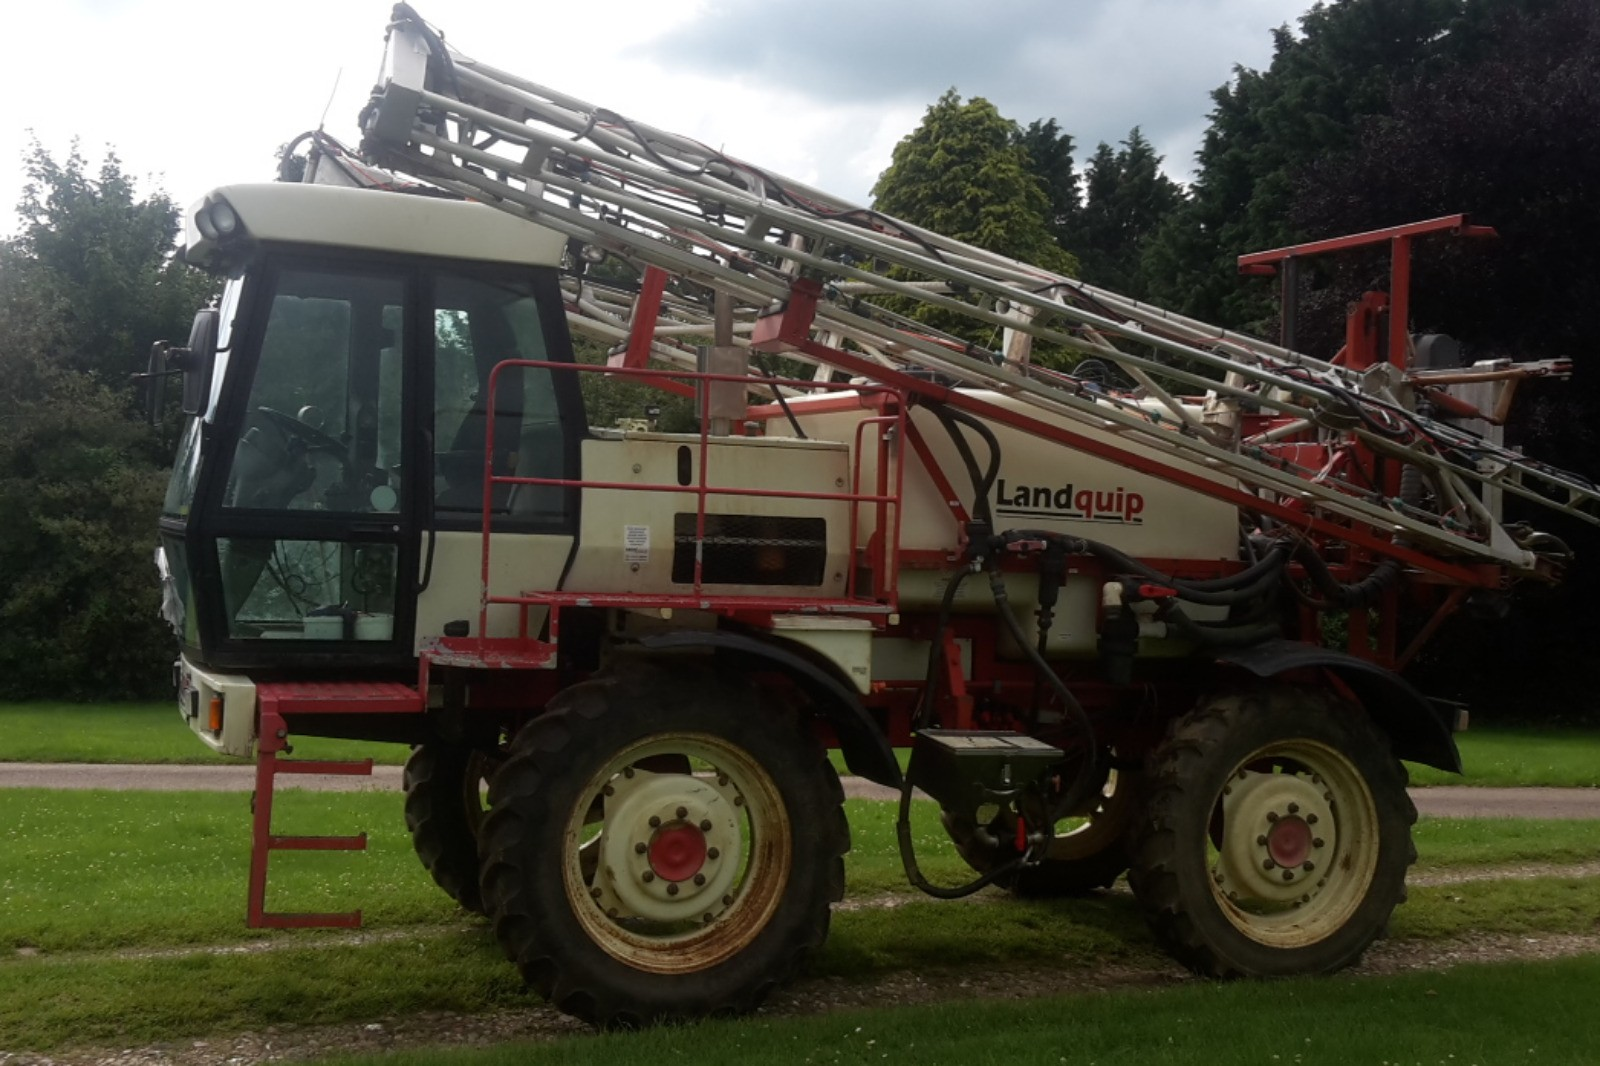 Landquip Self-propelled Sprayer